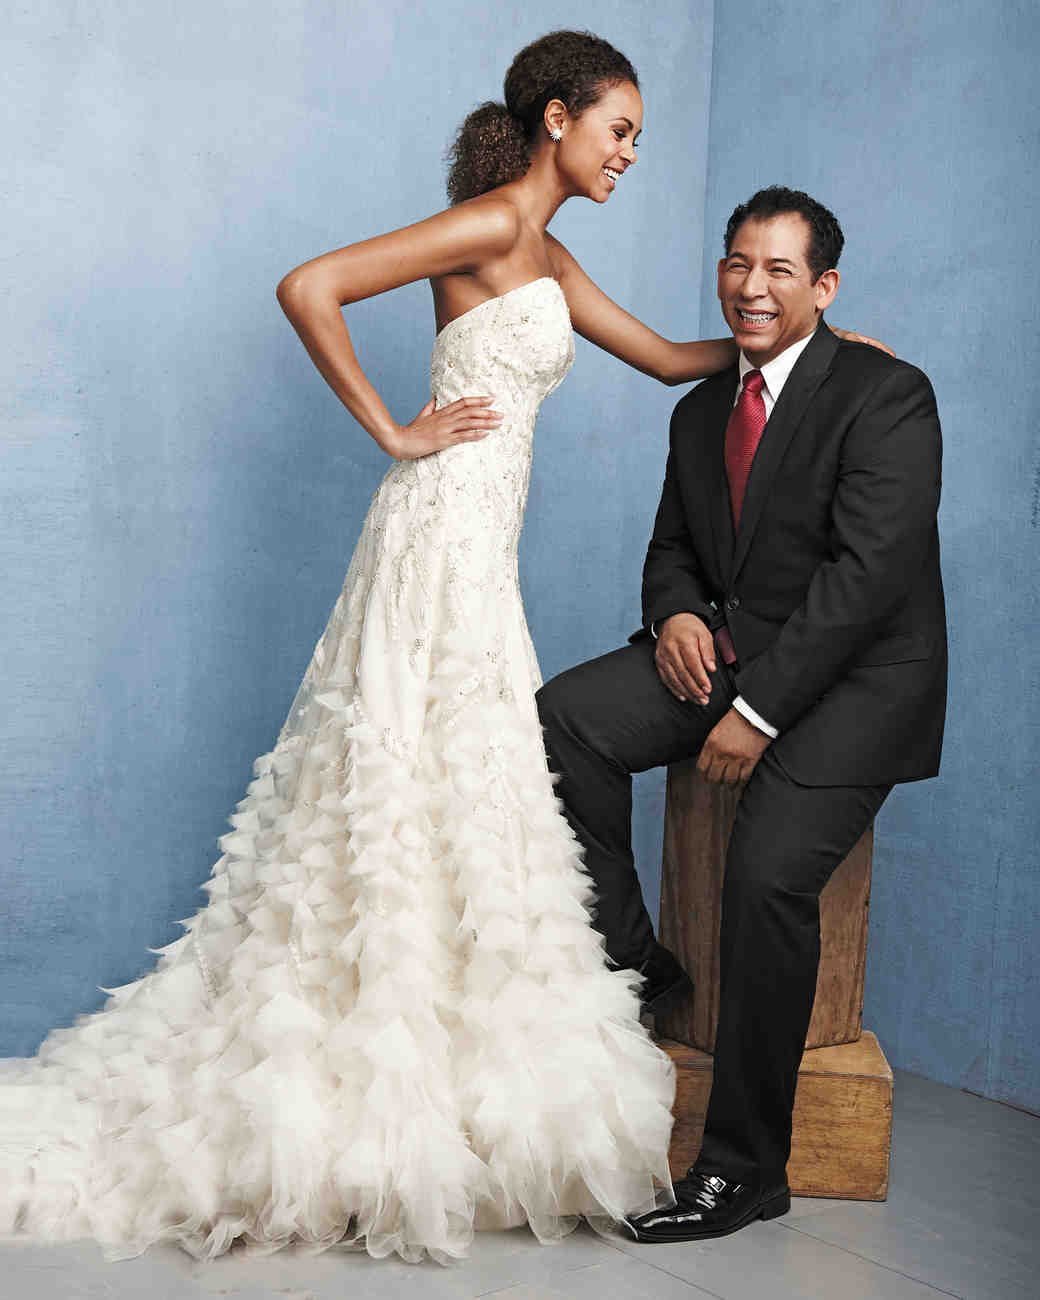 Iconic Wedding-Dress Designers | Martha Stewart Weddings